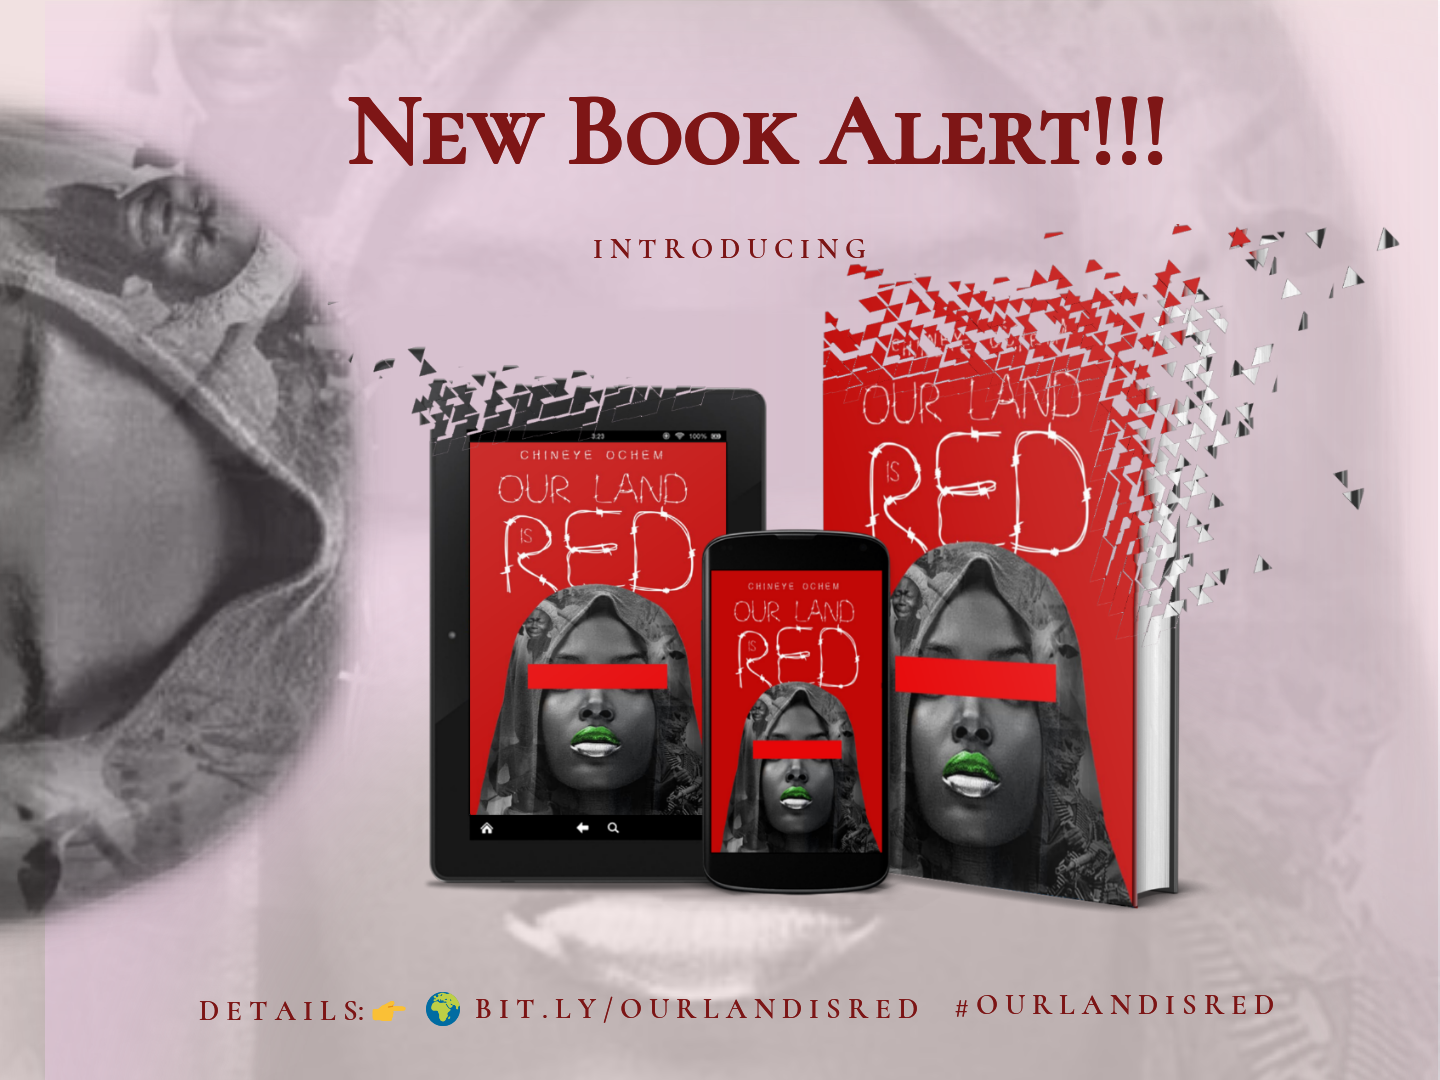 New Book Alert: Introducing Our Land Is RED by Chineye Oyem